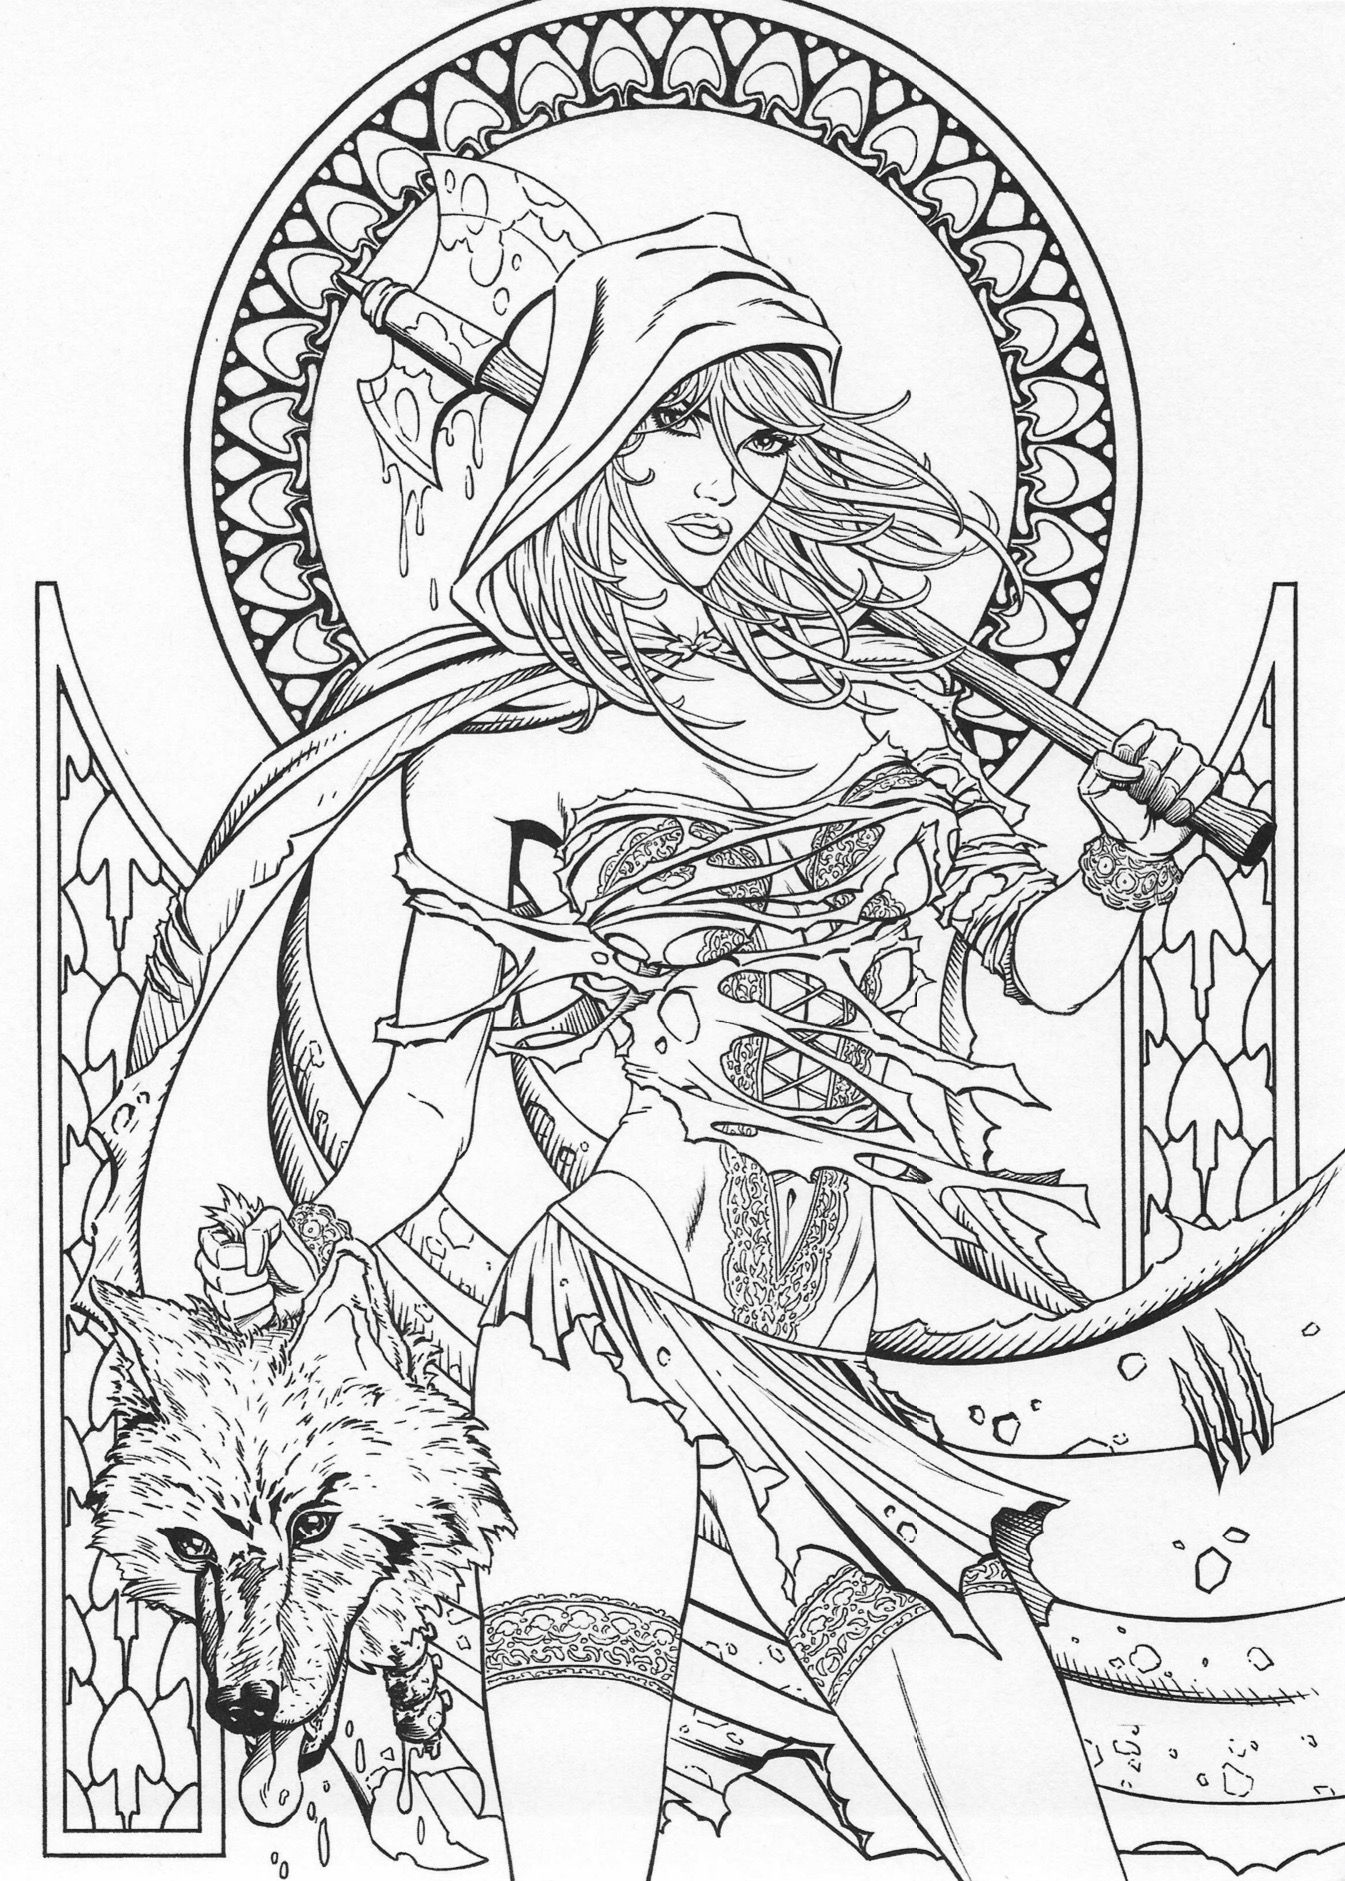 Grimm Fairy Tales coloring page | Grimm Fairy Tales Coloring ...